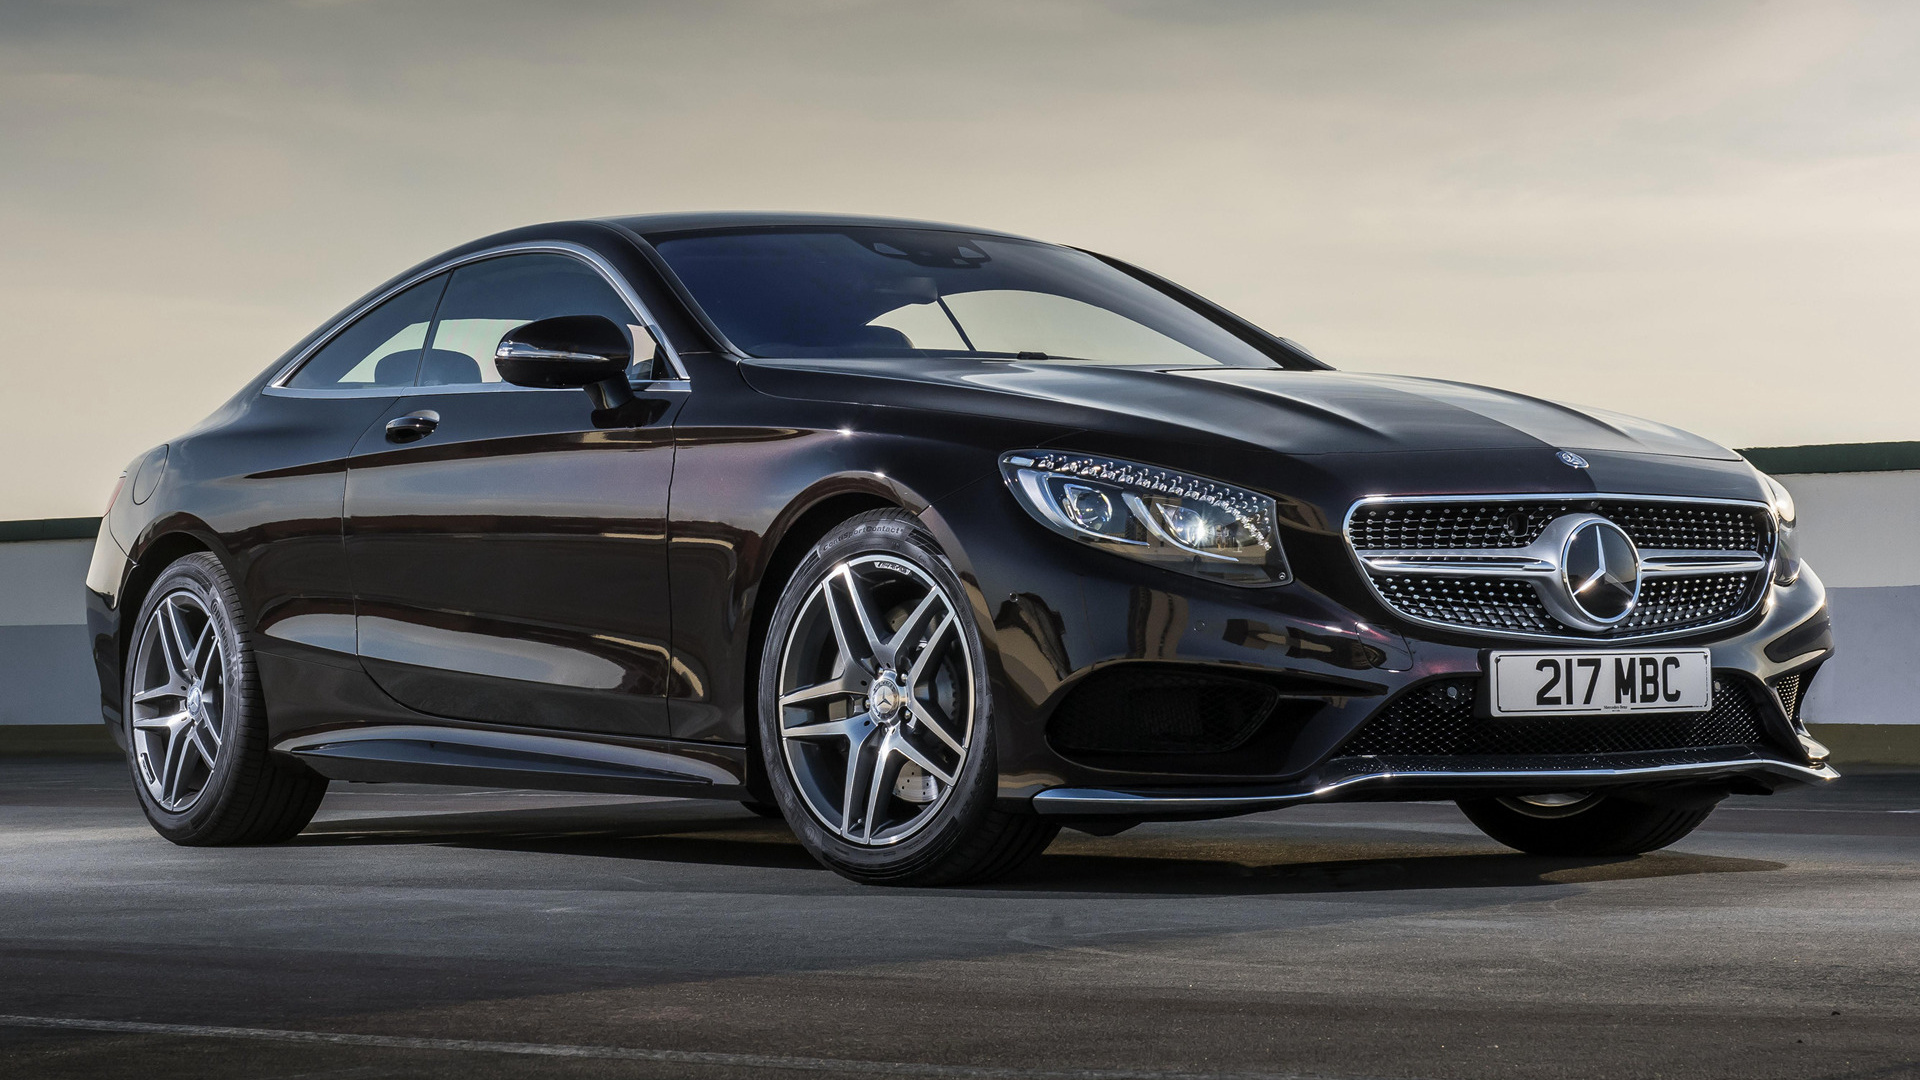 Toyota Of Pullman >> 2014 Mercedes-Benz S-Class Coupe AMG Line (UK) - Wallpapers and HD Images | Car Pixel